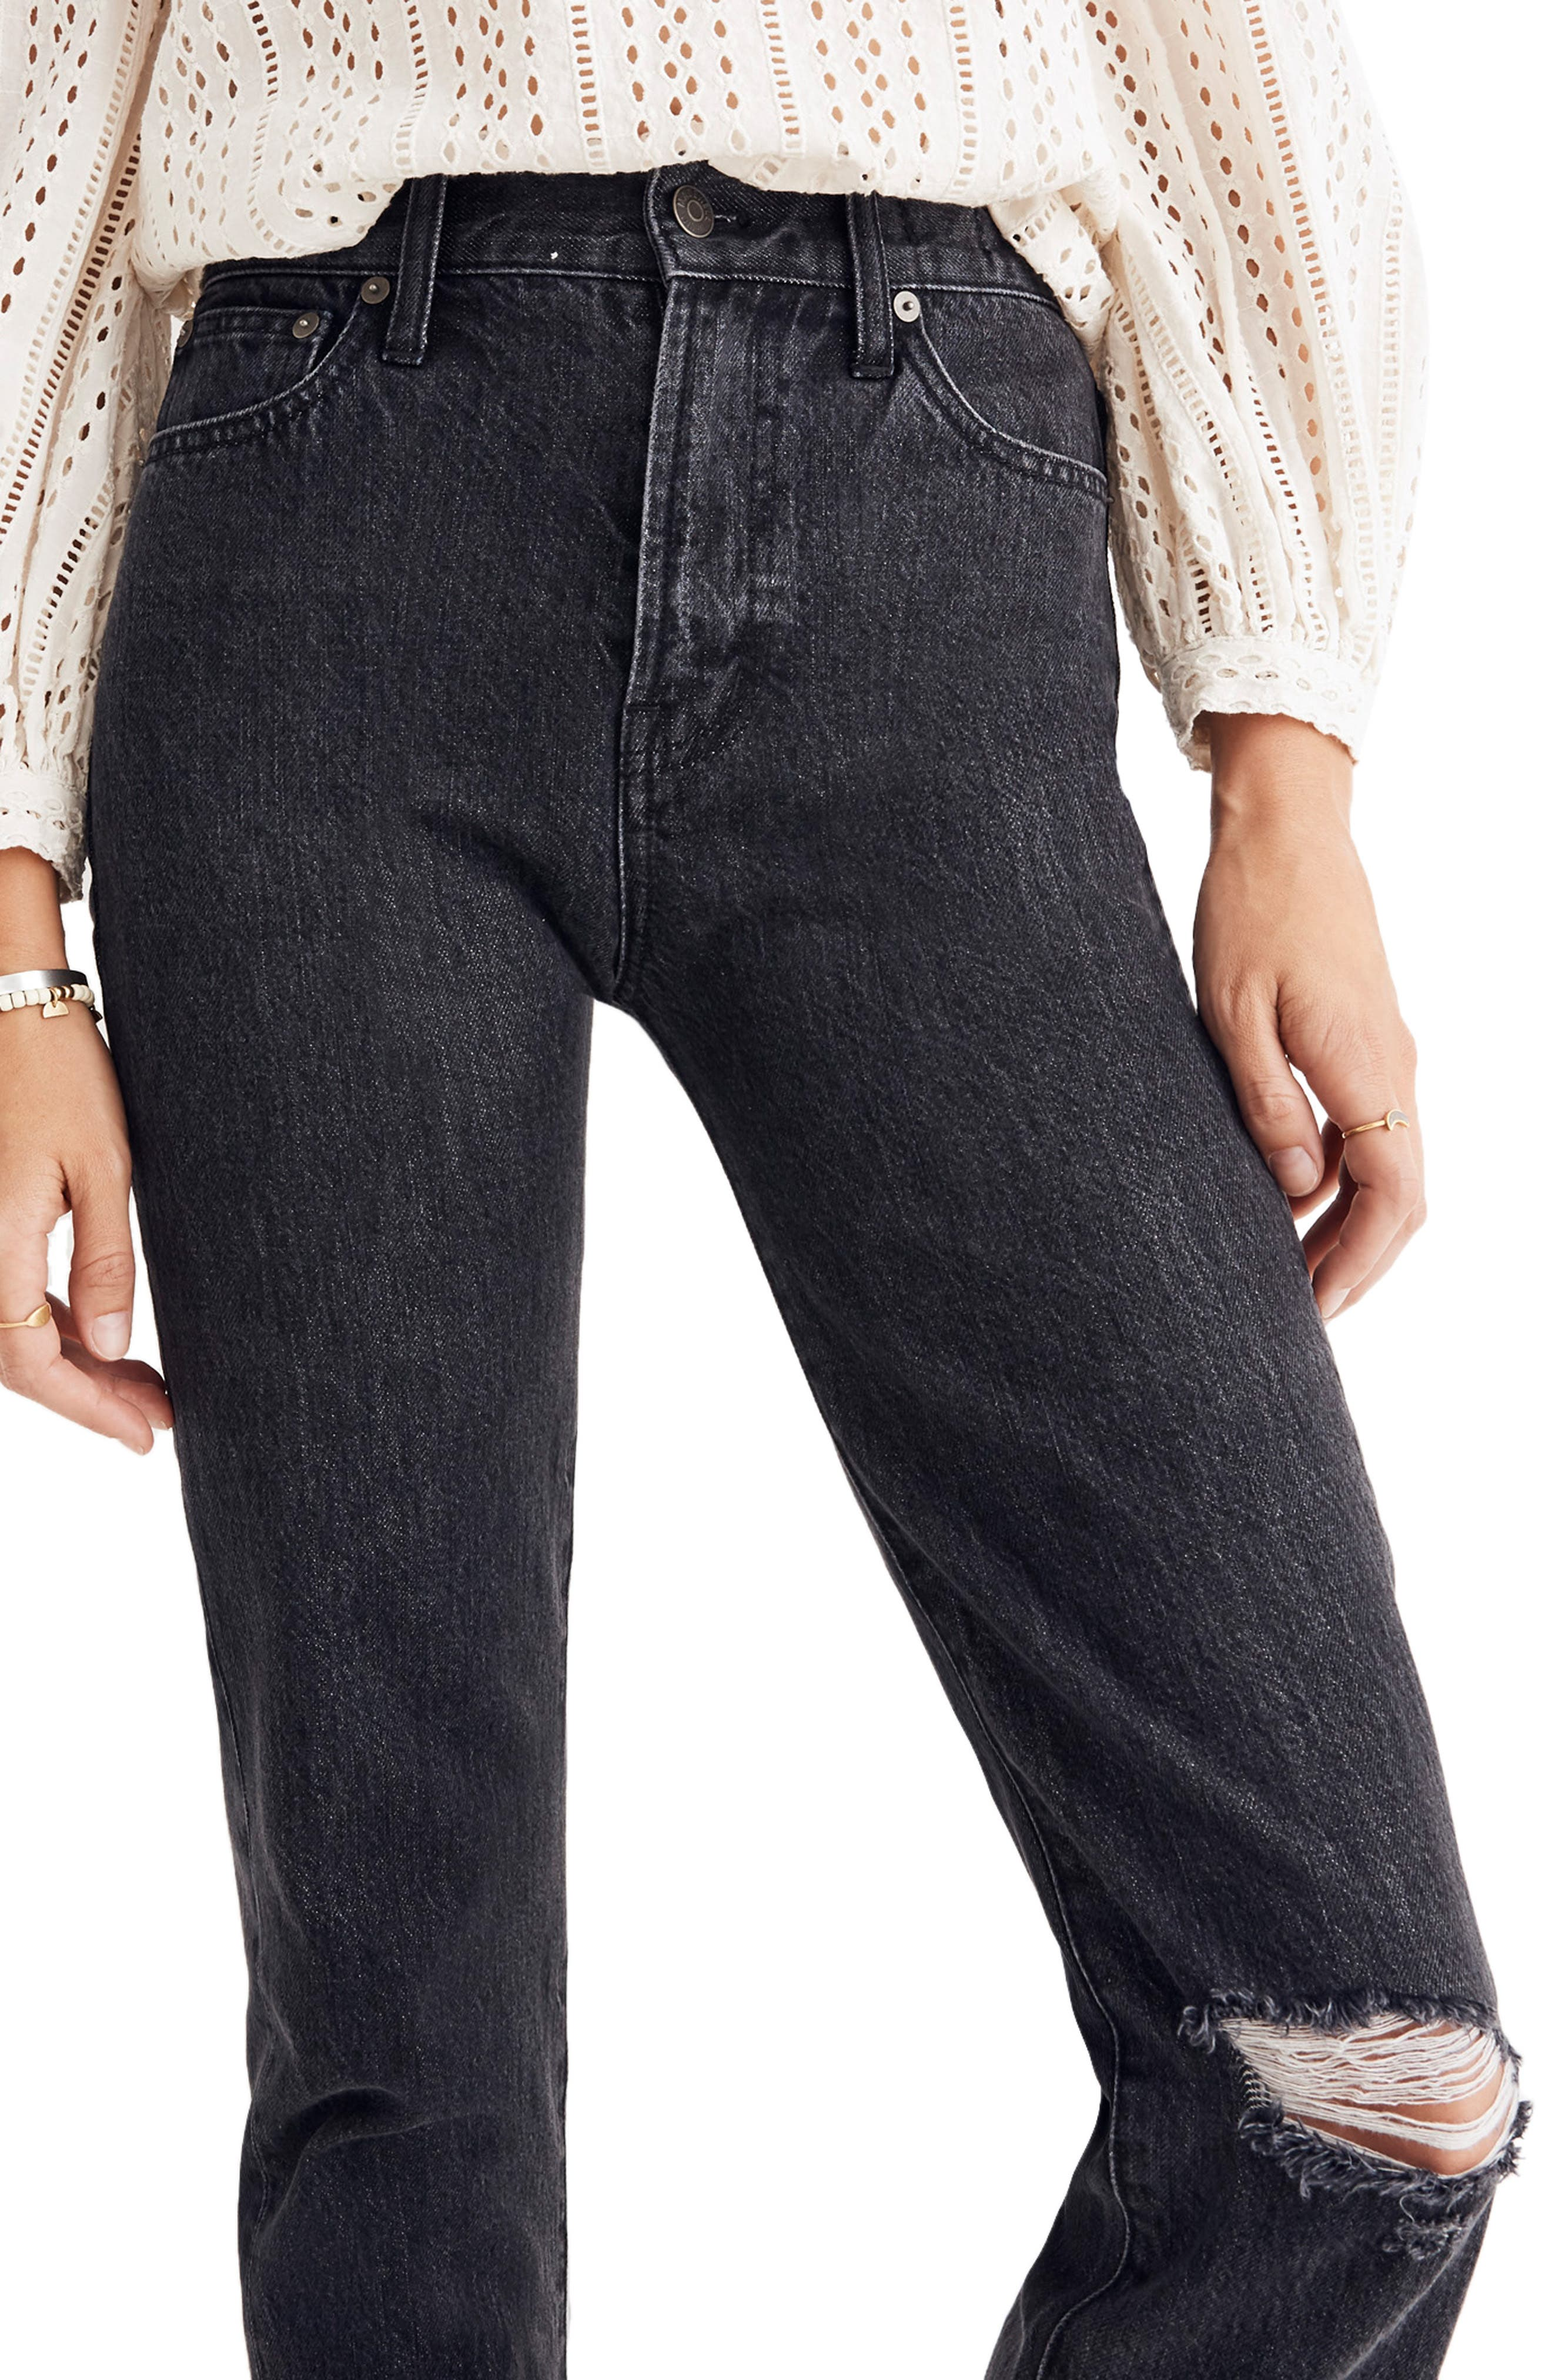 MADEWELL, The Perfect Vintage Ripped Knee Jeans, Main thumbnail 1, color, ROXSTONE